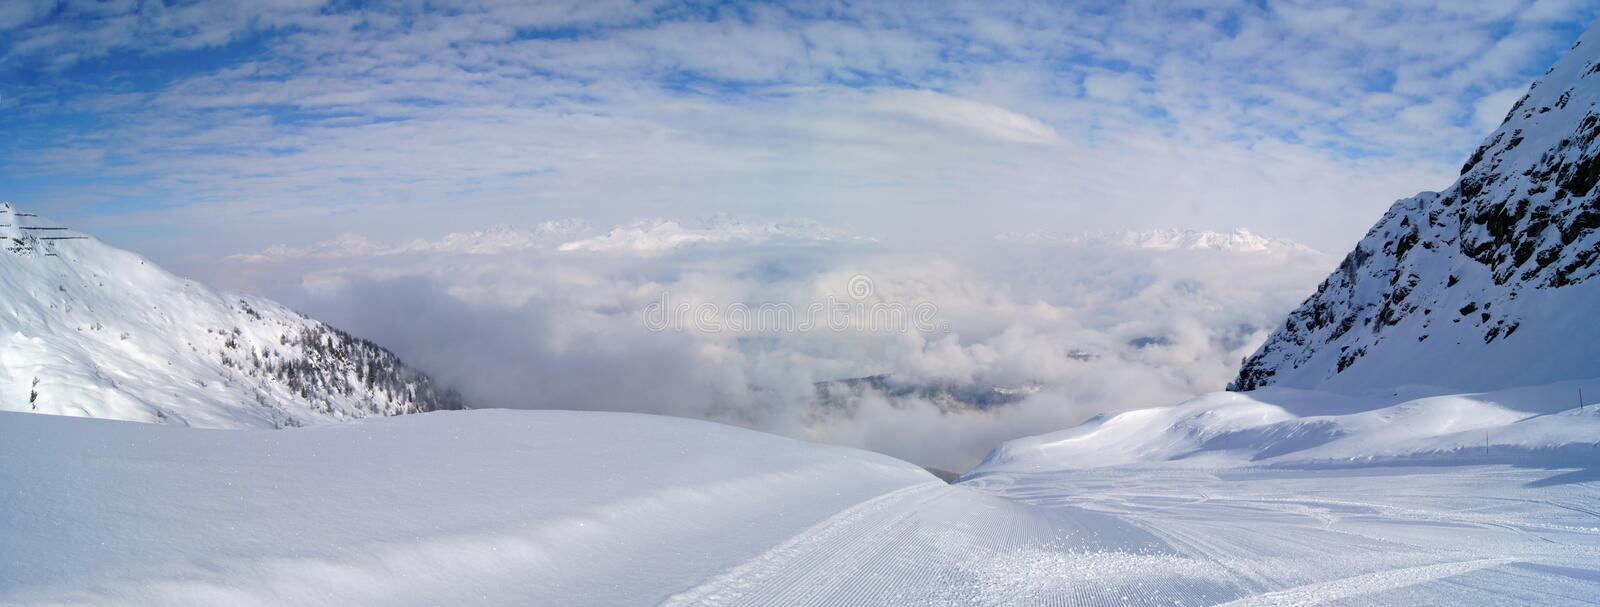 Alps In The Winter Stock Image